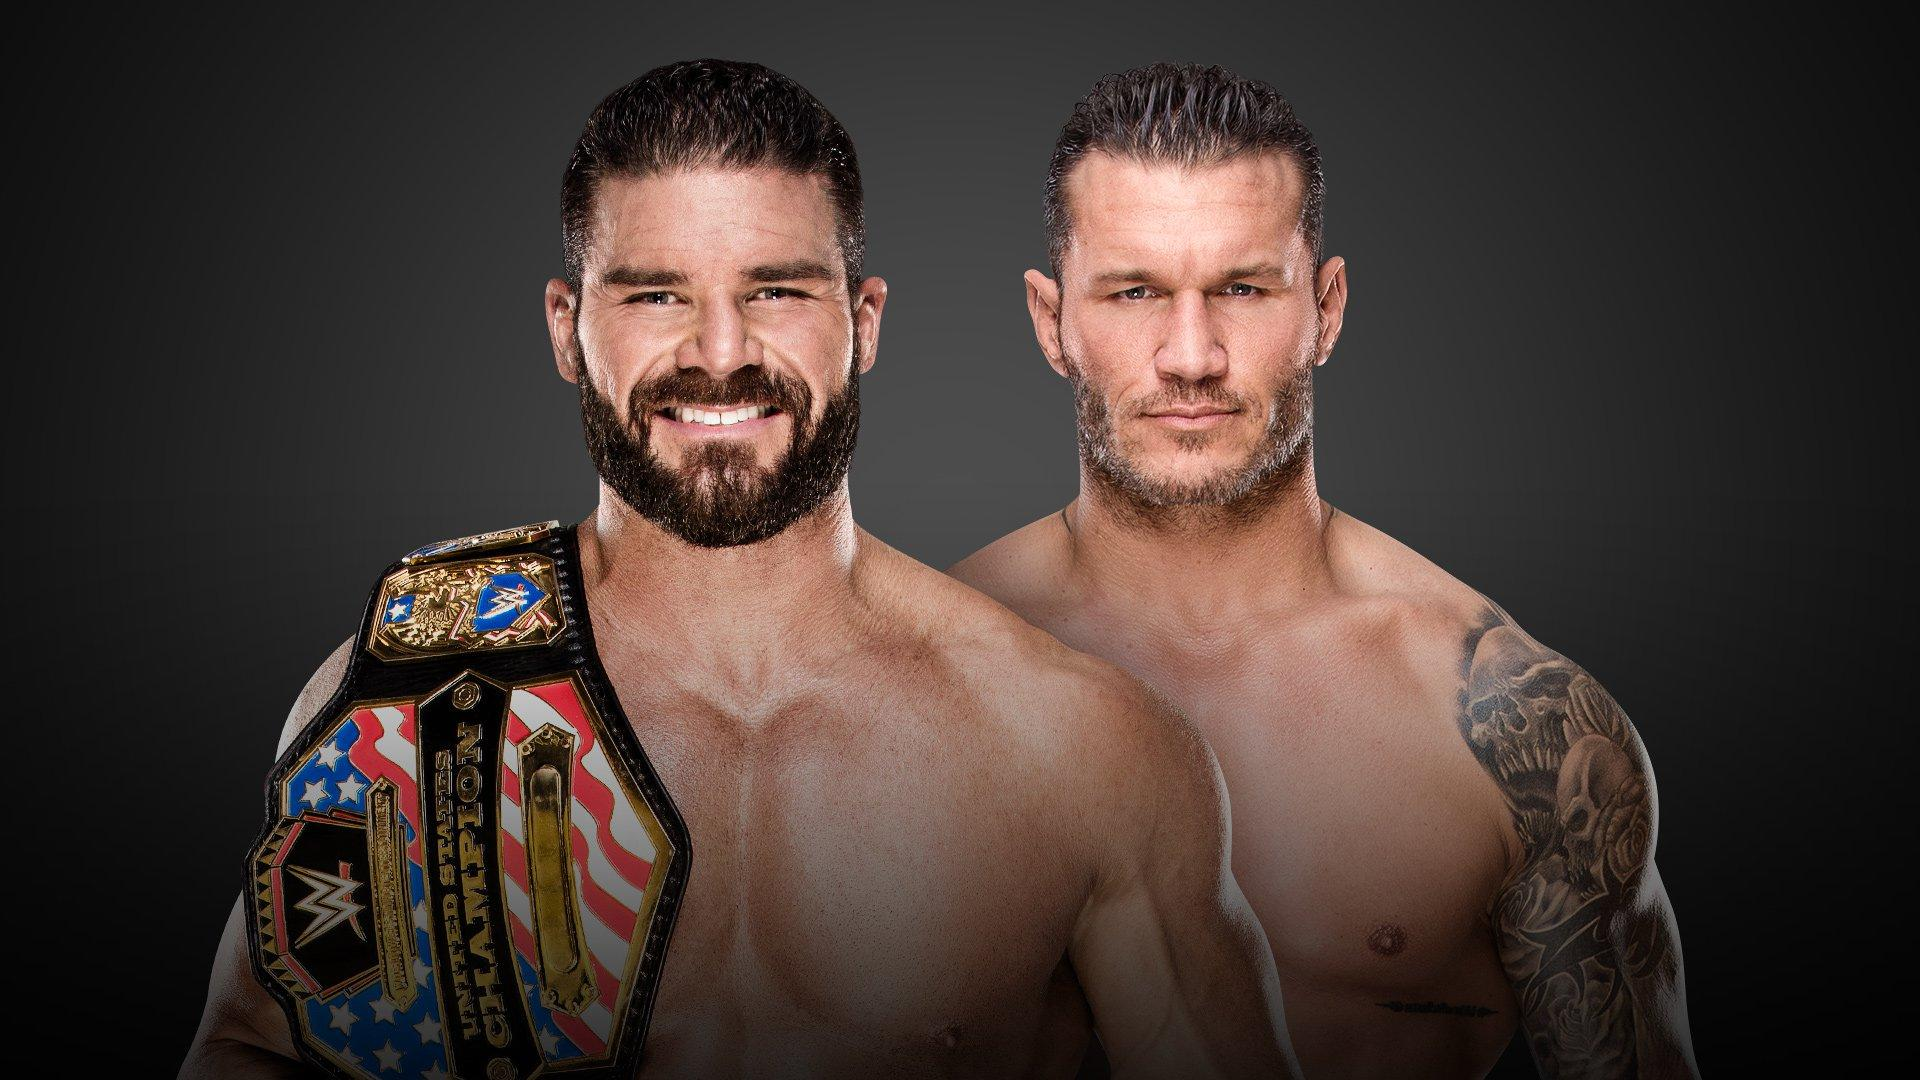 United States Champion Bobby Roode vs Randy Orton